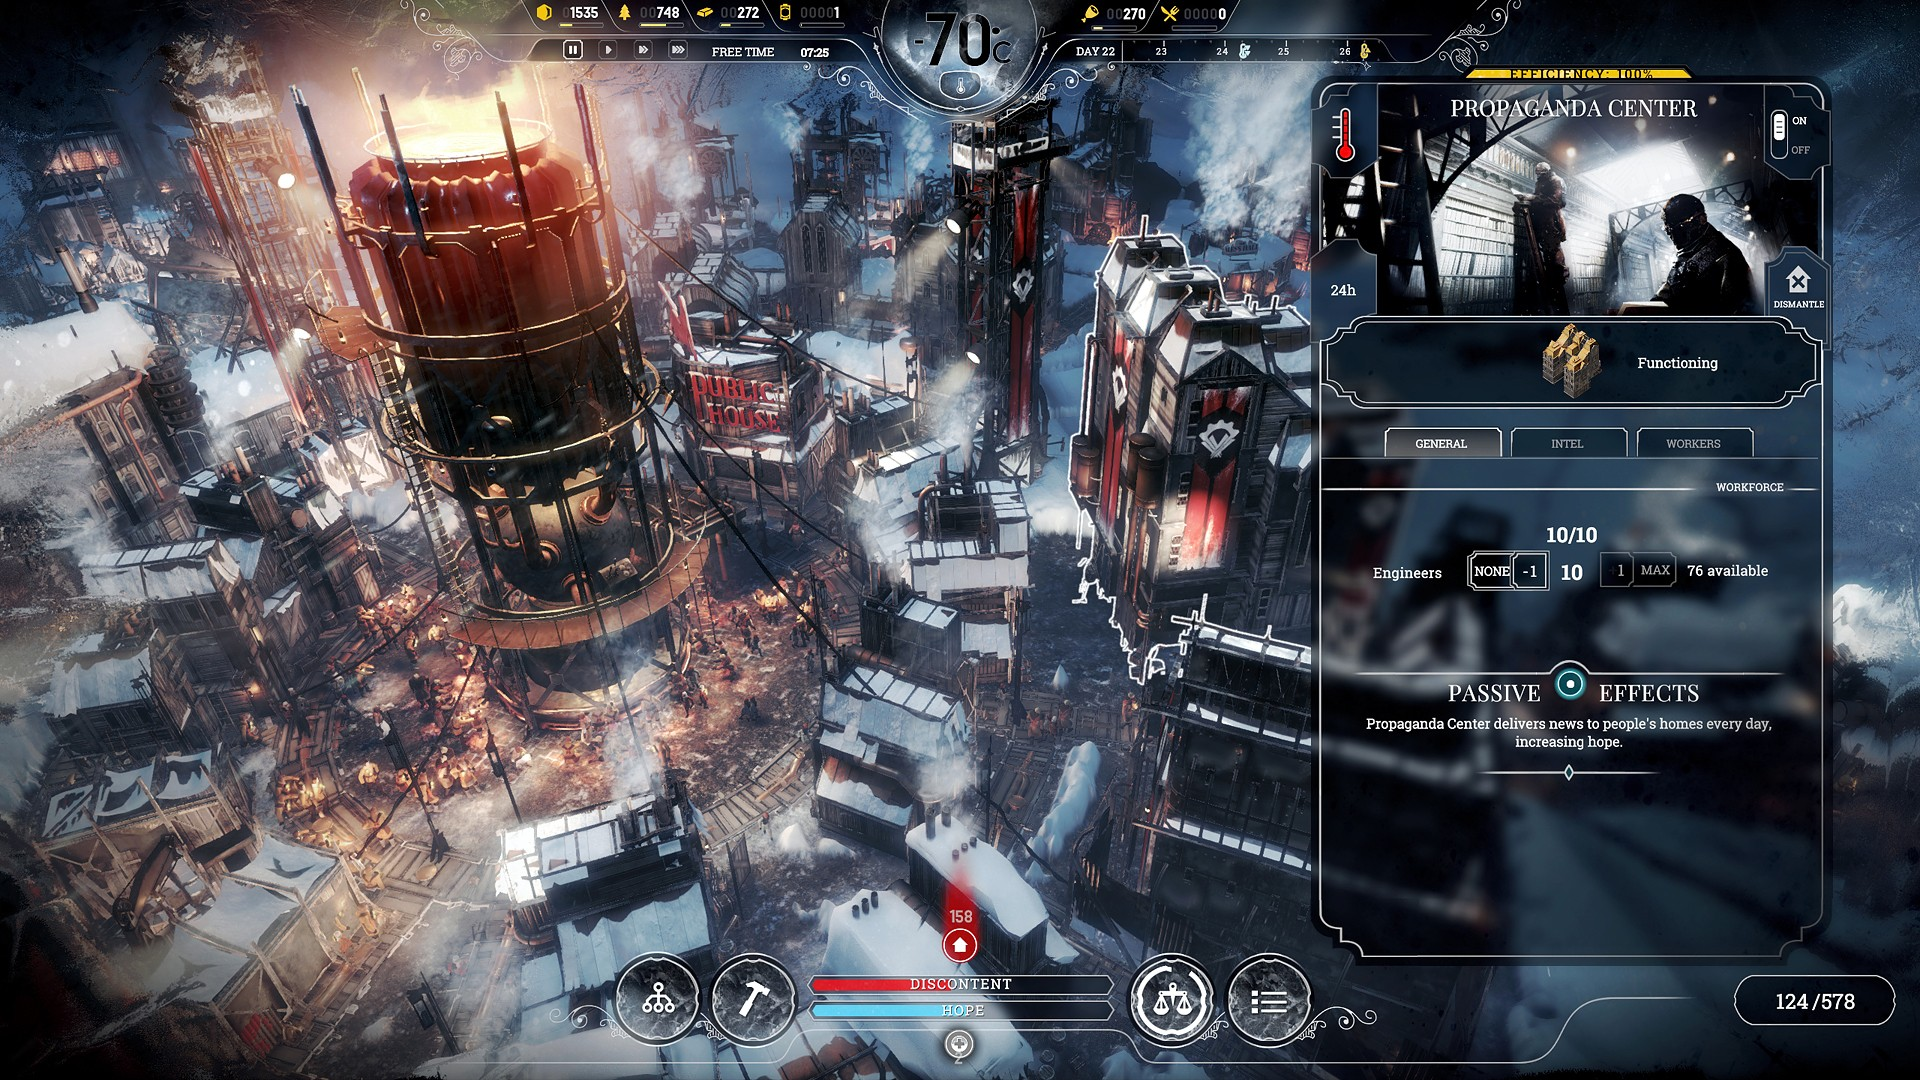 review-frostpunk-propaganda-center.jpg